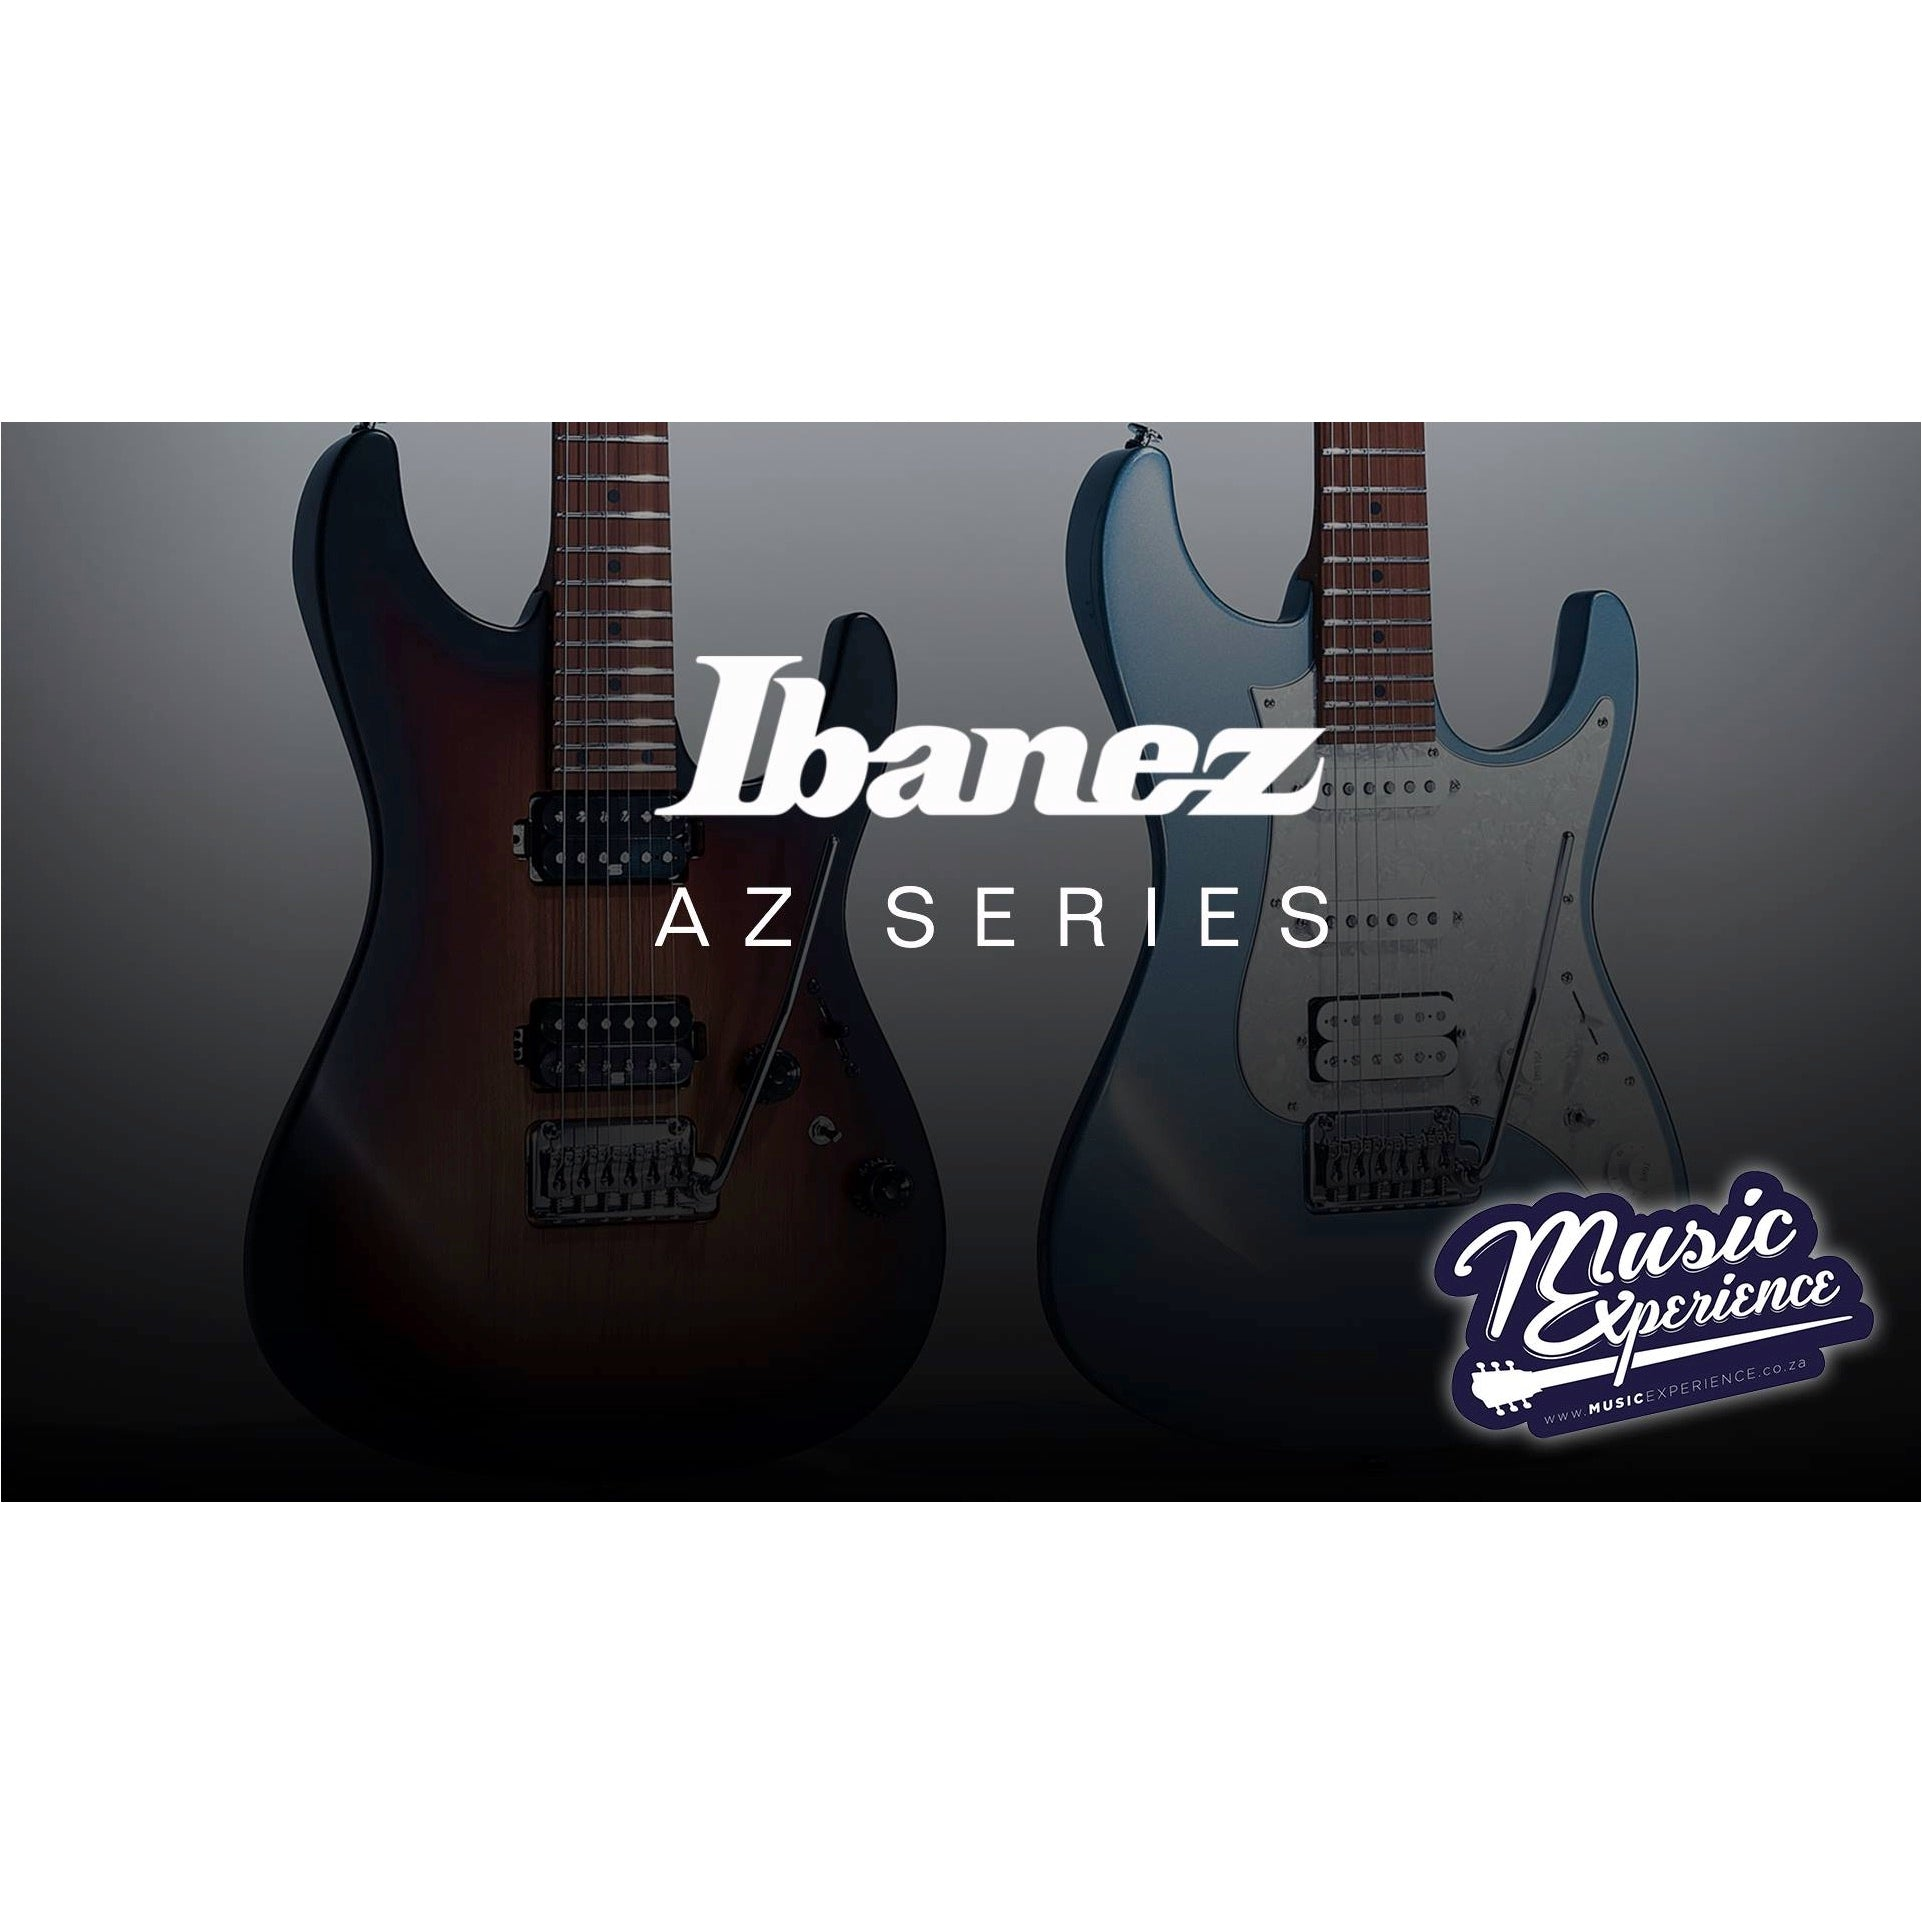 Ibanez AZ Series Launch // Music Experience // 1 December